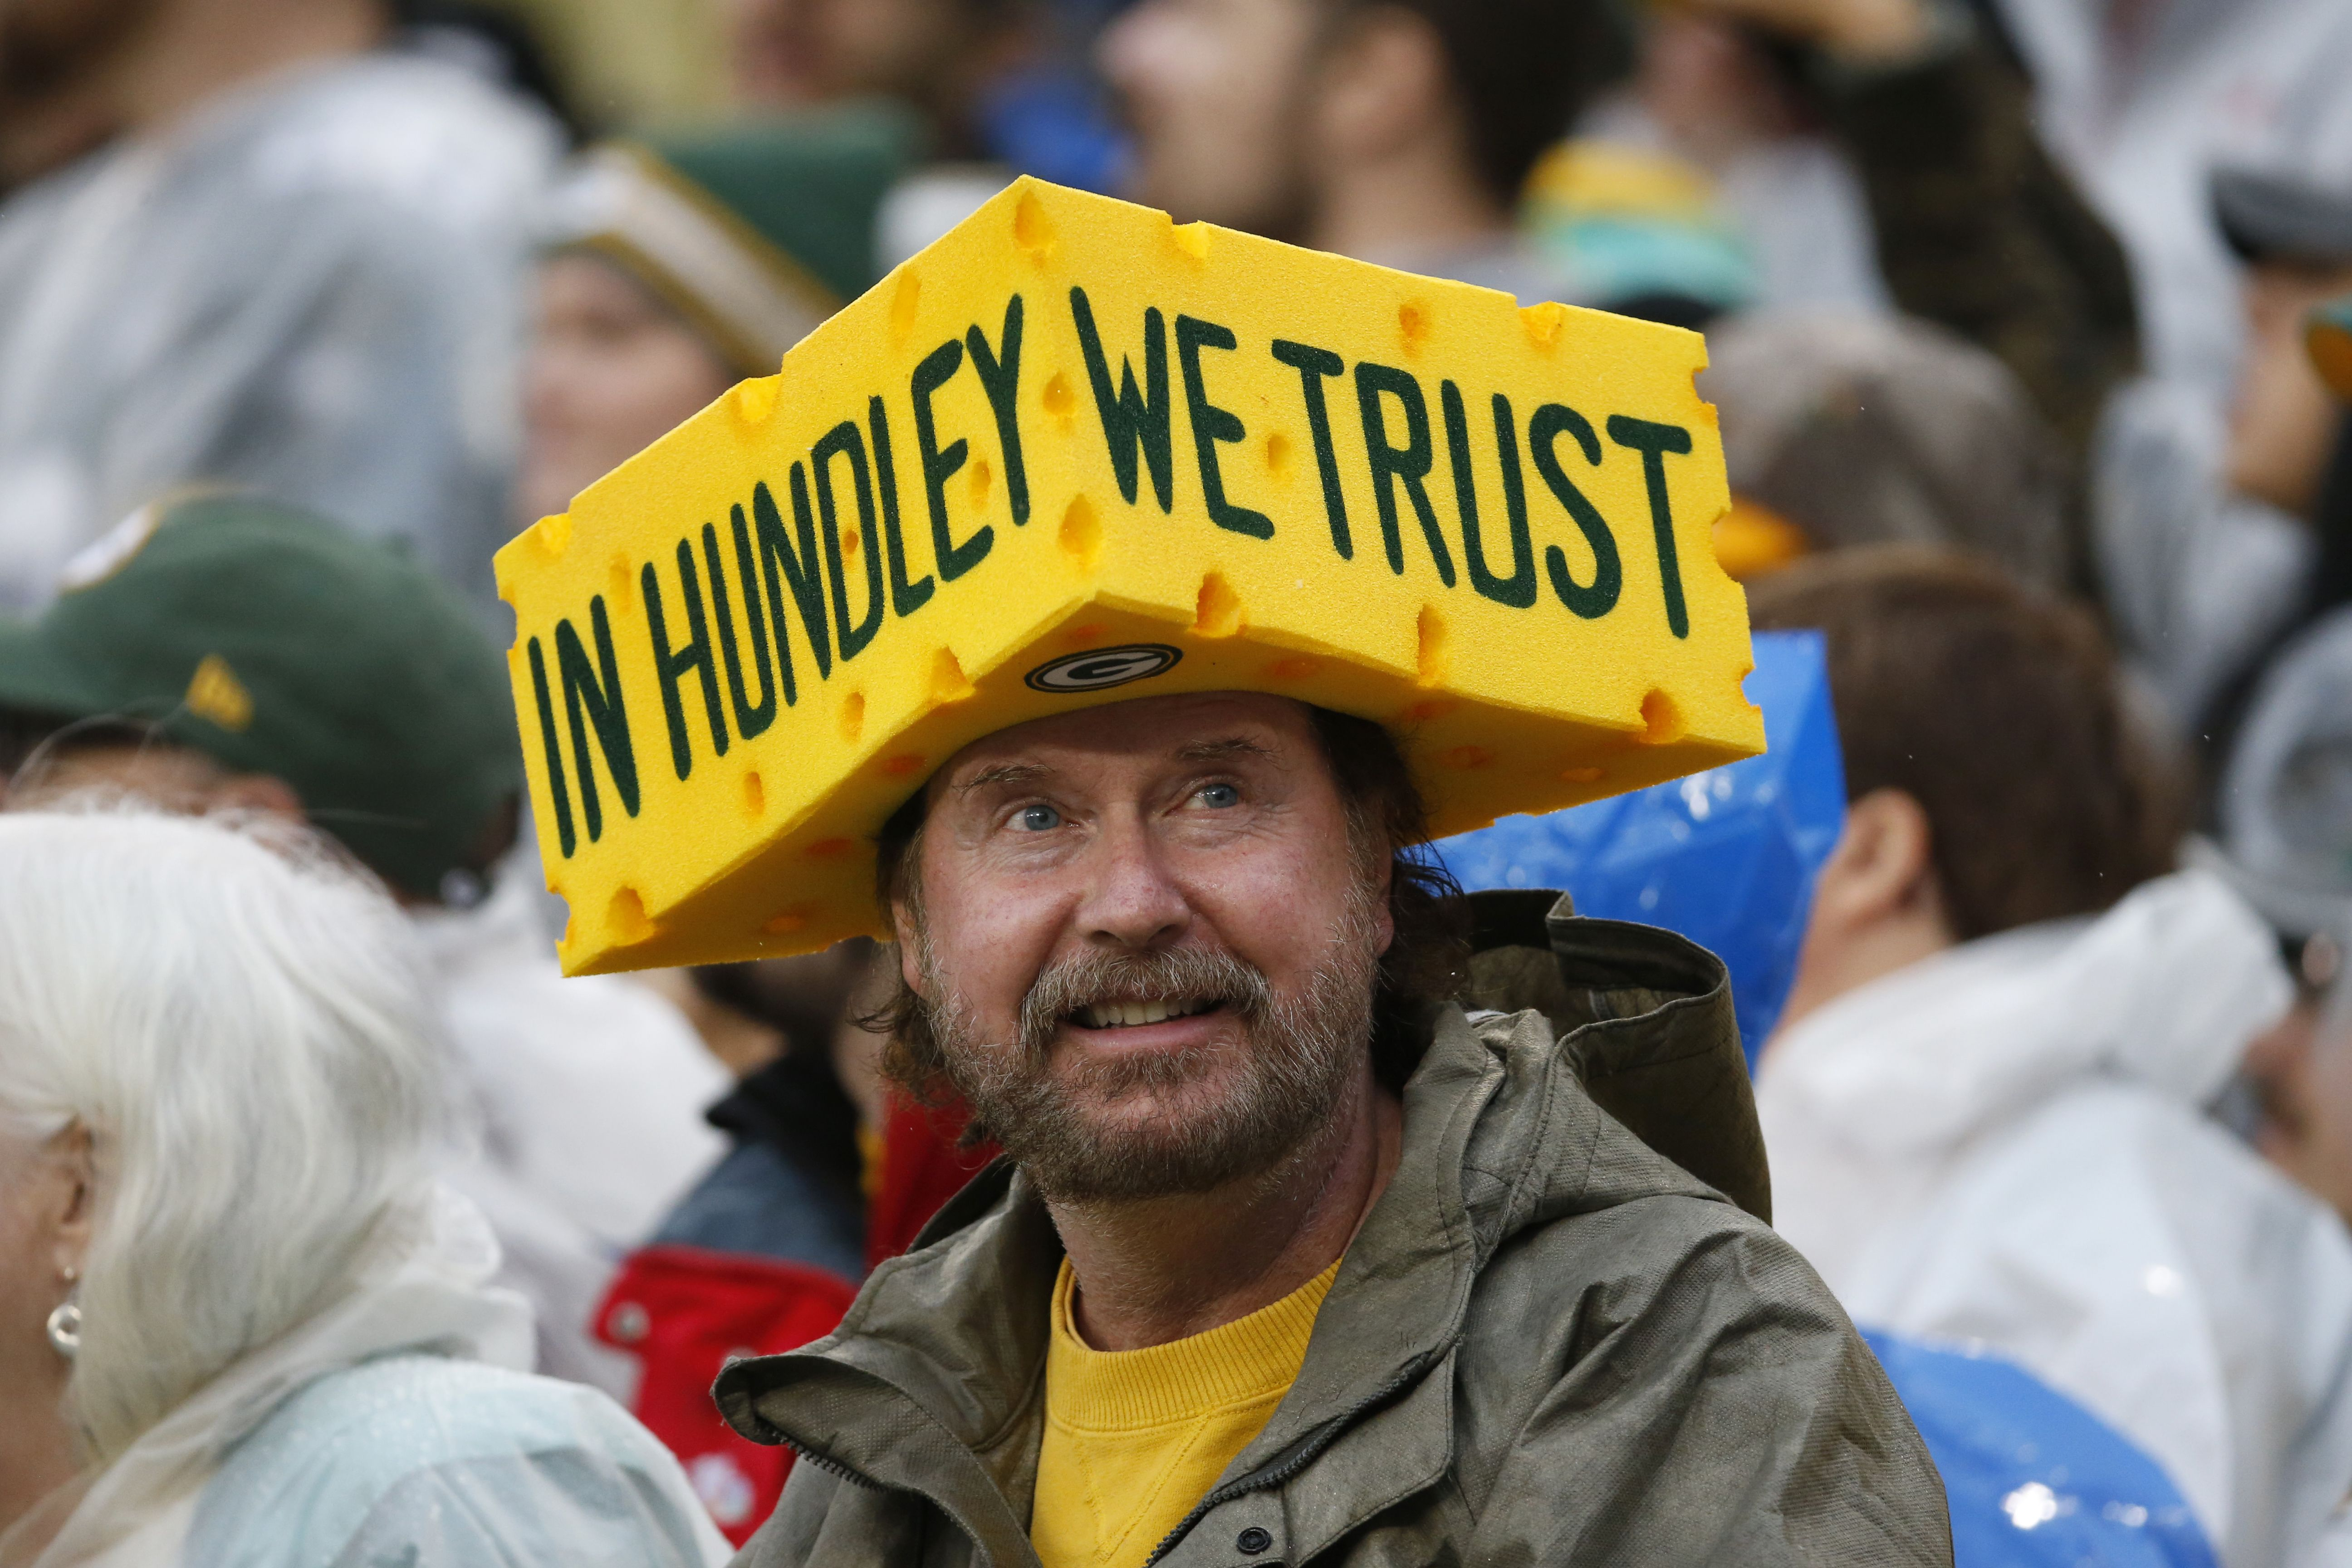 Green Bay Packers Fans Adaptable To Any Situation Ap Roemer Gopackgo Green Bay Packers Green Bay Packers Fans Green Bay